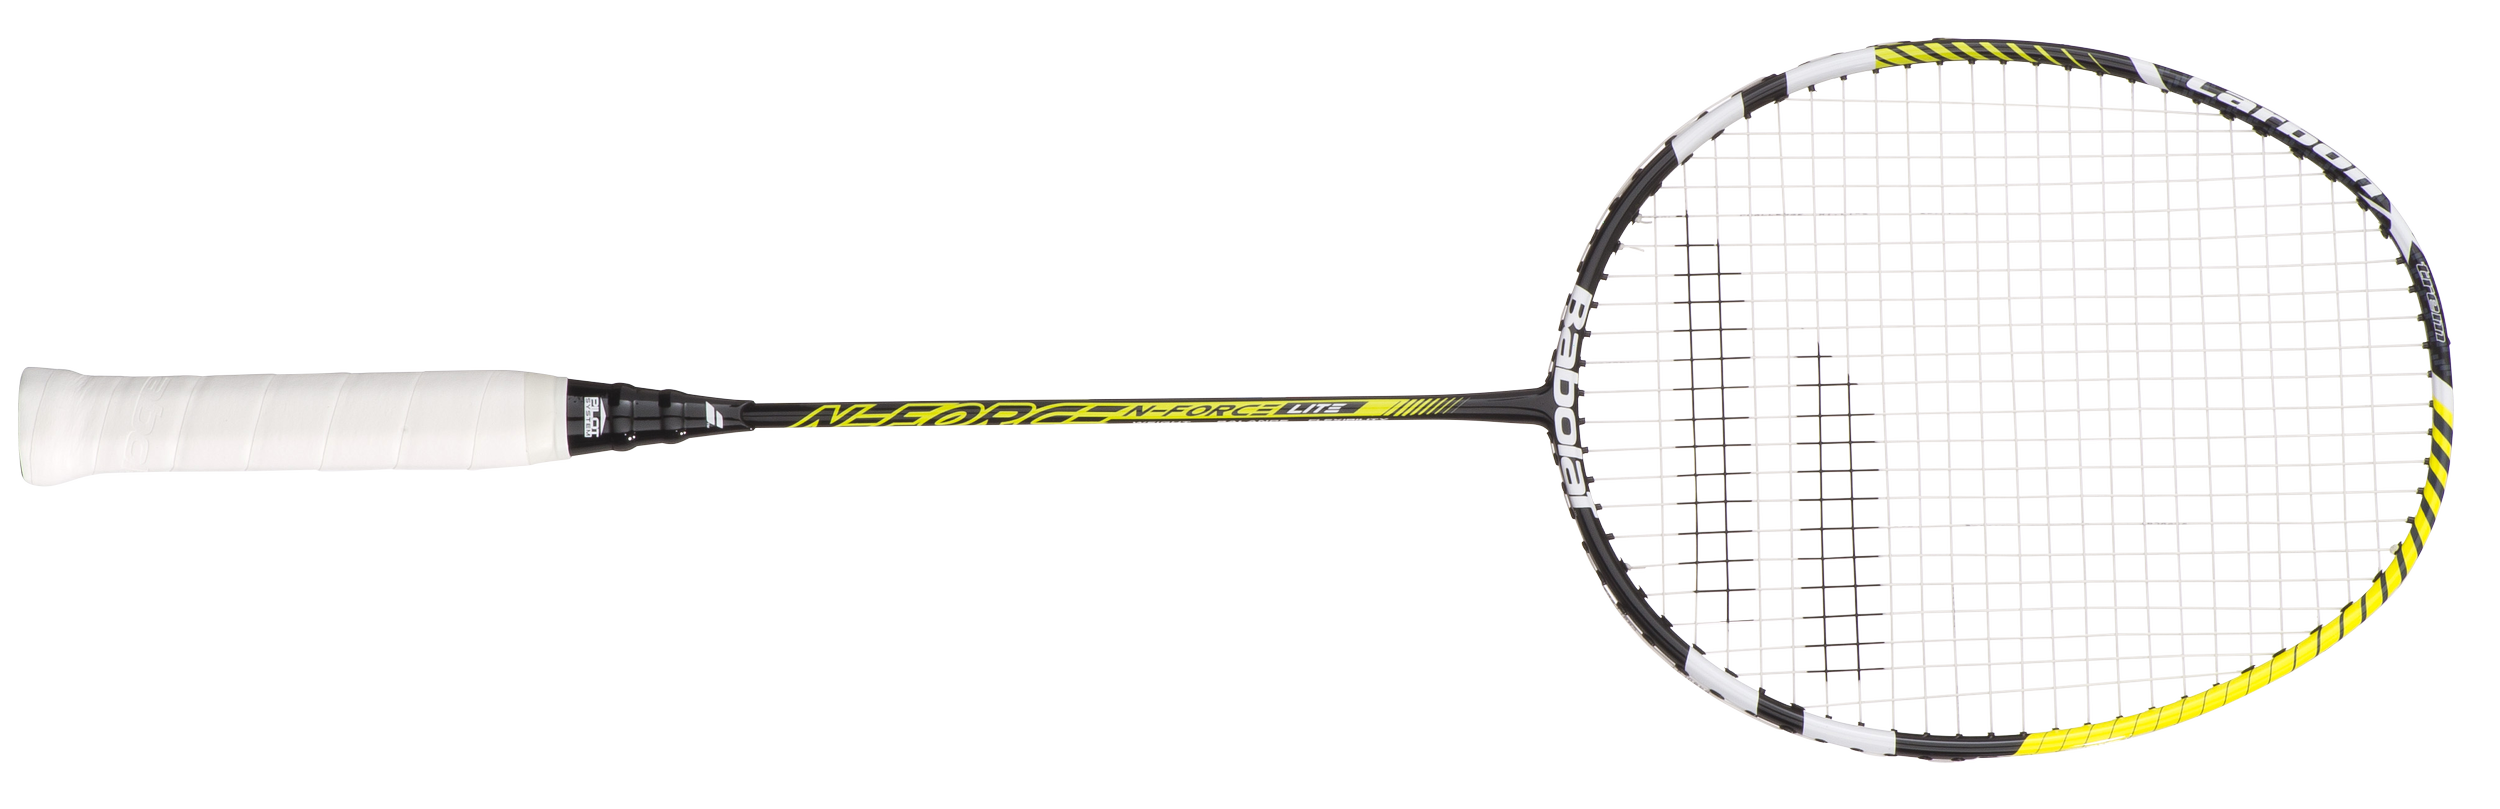 Badminton PNG Transparent Badminton.PNG Images. | PlusPNG Badminton Player Png